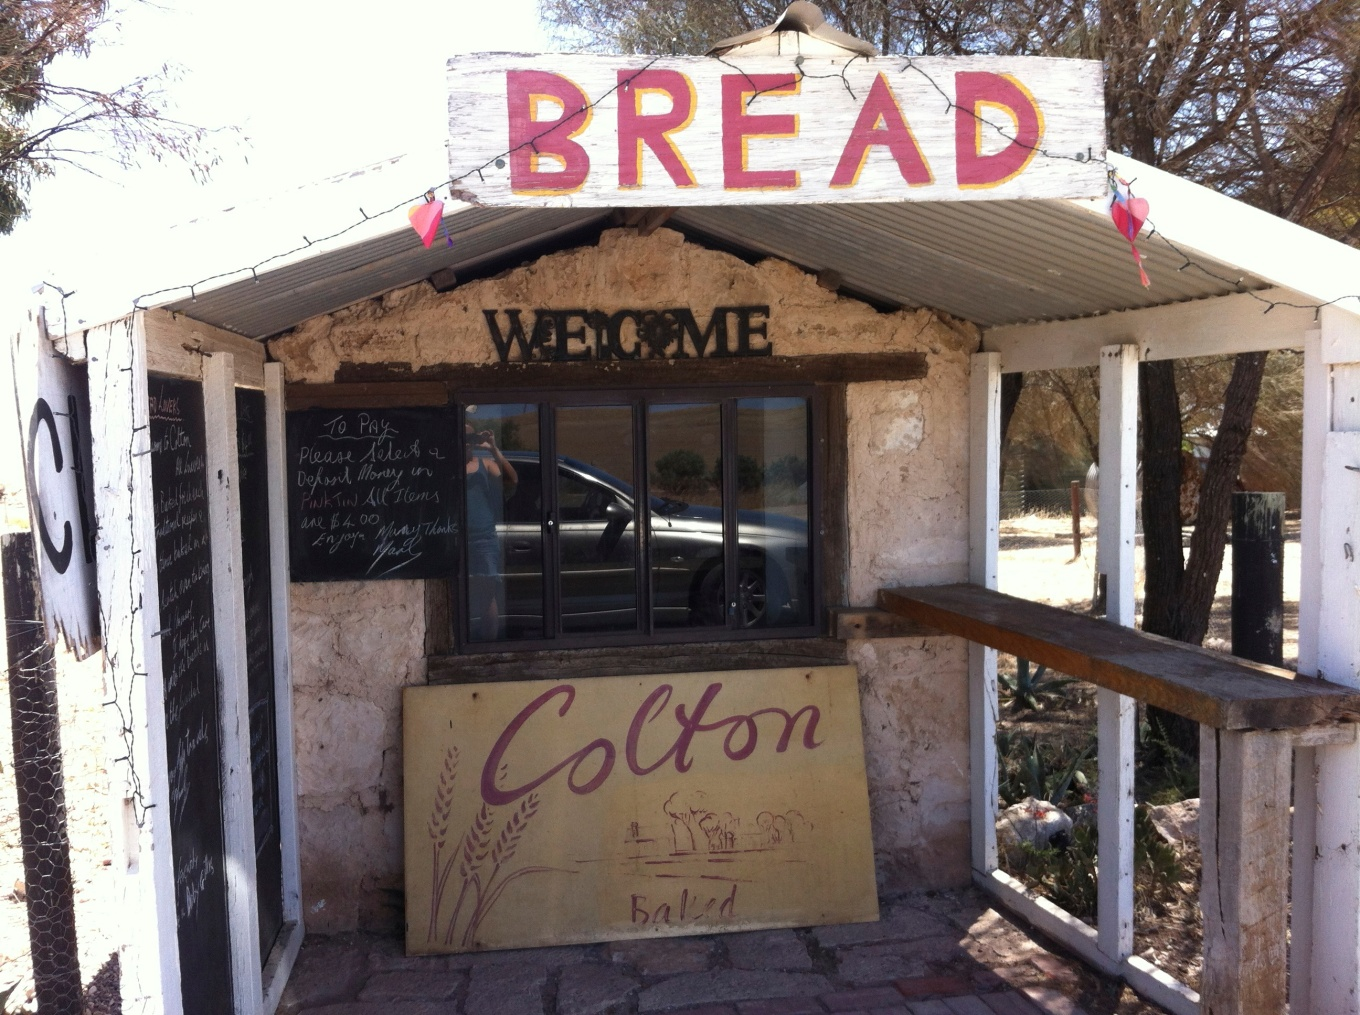 Colton Roadside Bakery